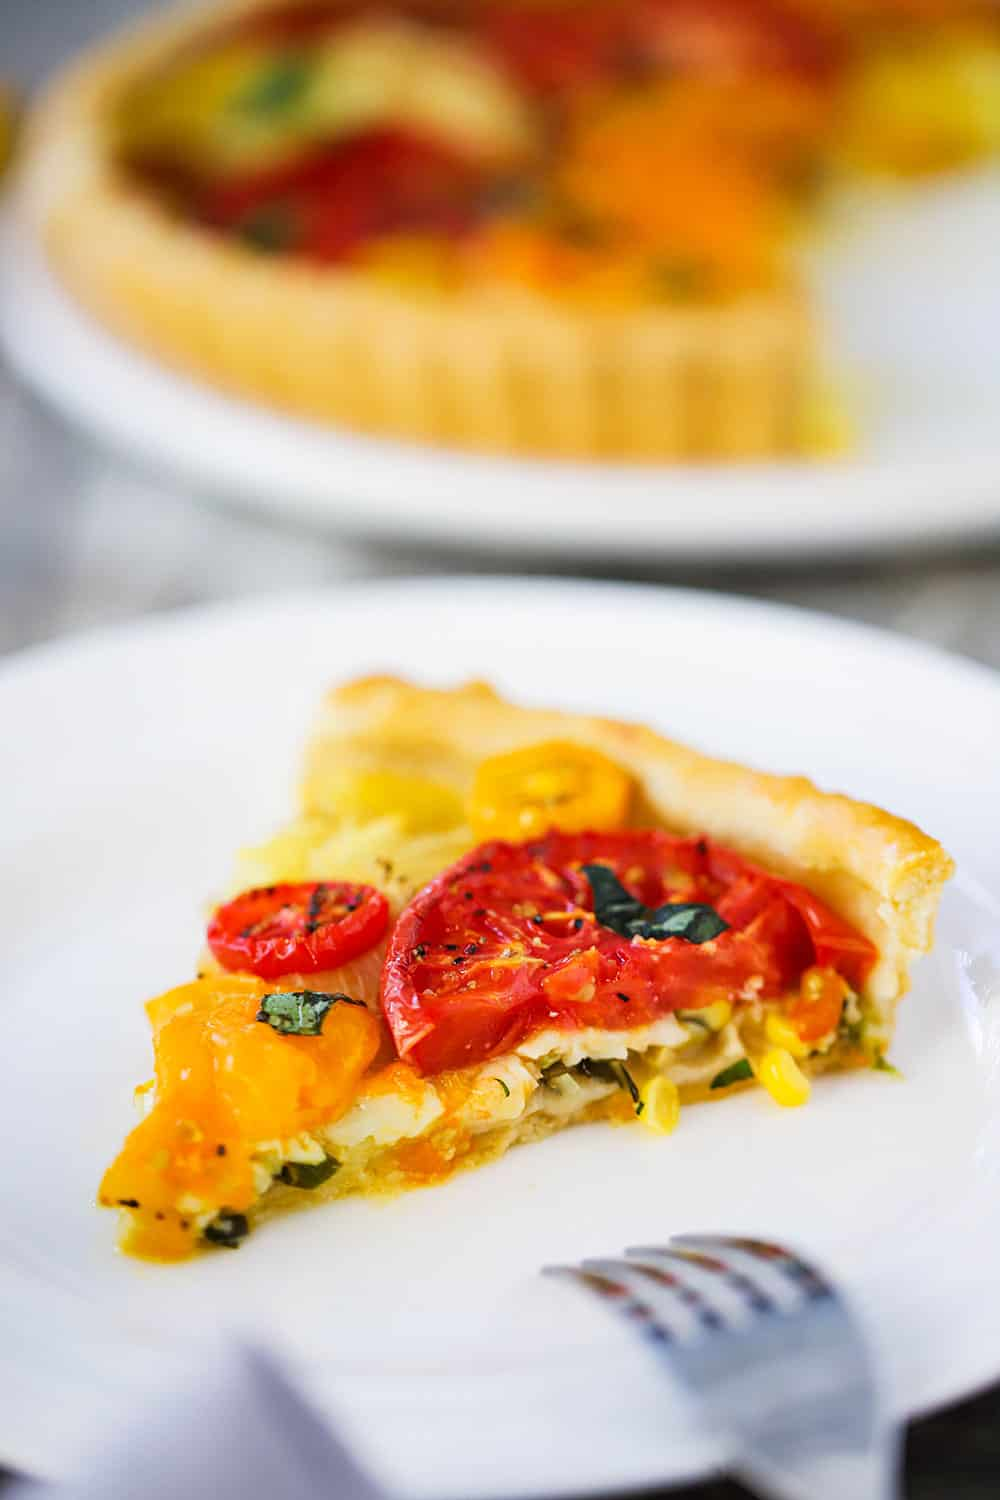 A slice of a tomato tart with corn and herbs on a small white plate next to a fork.